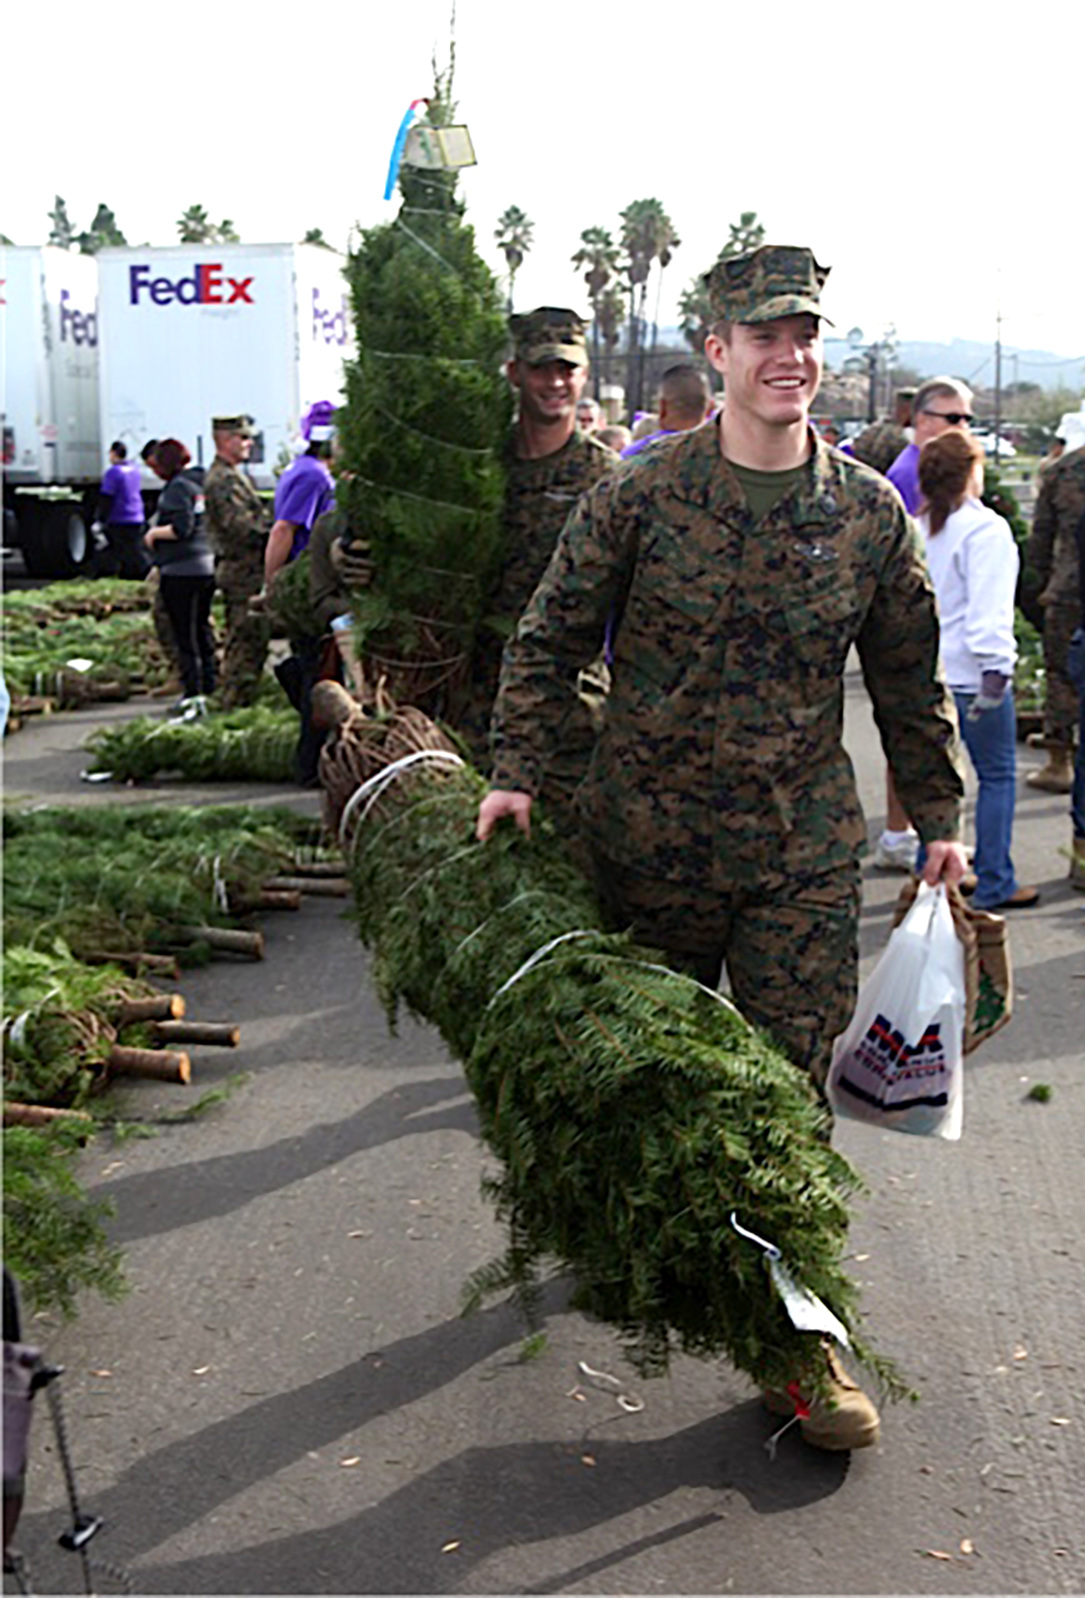 FedEx Delivering Trees for Troops